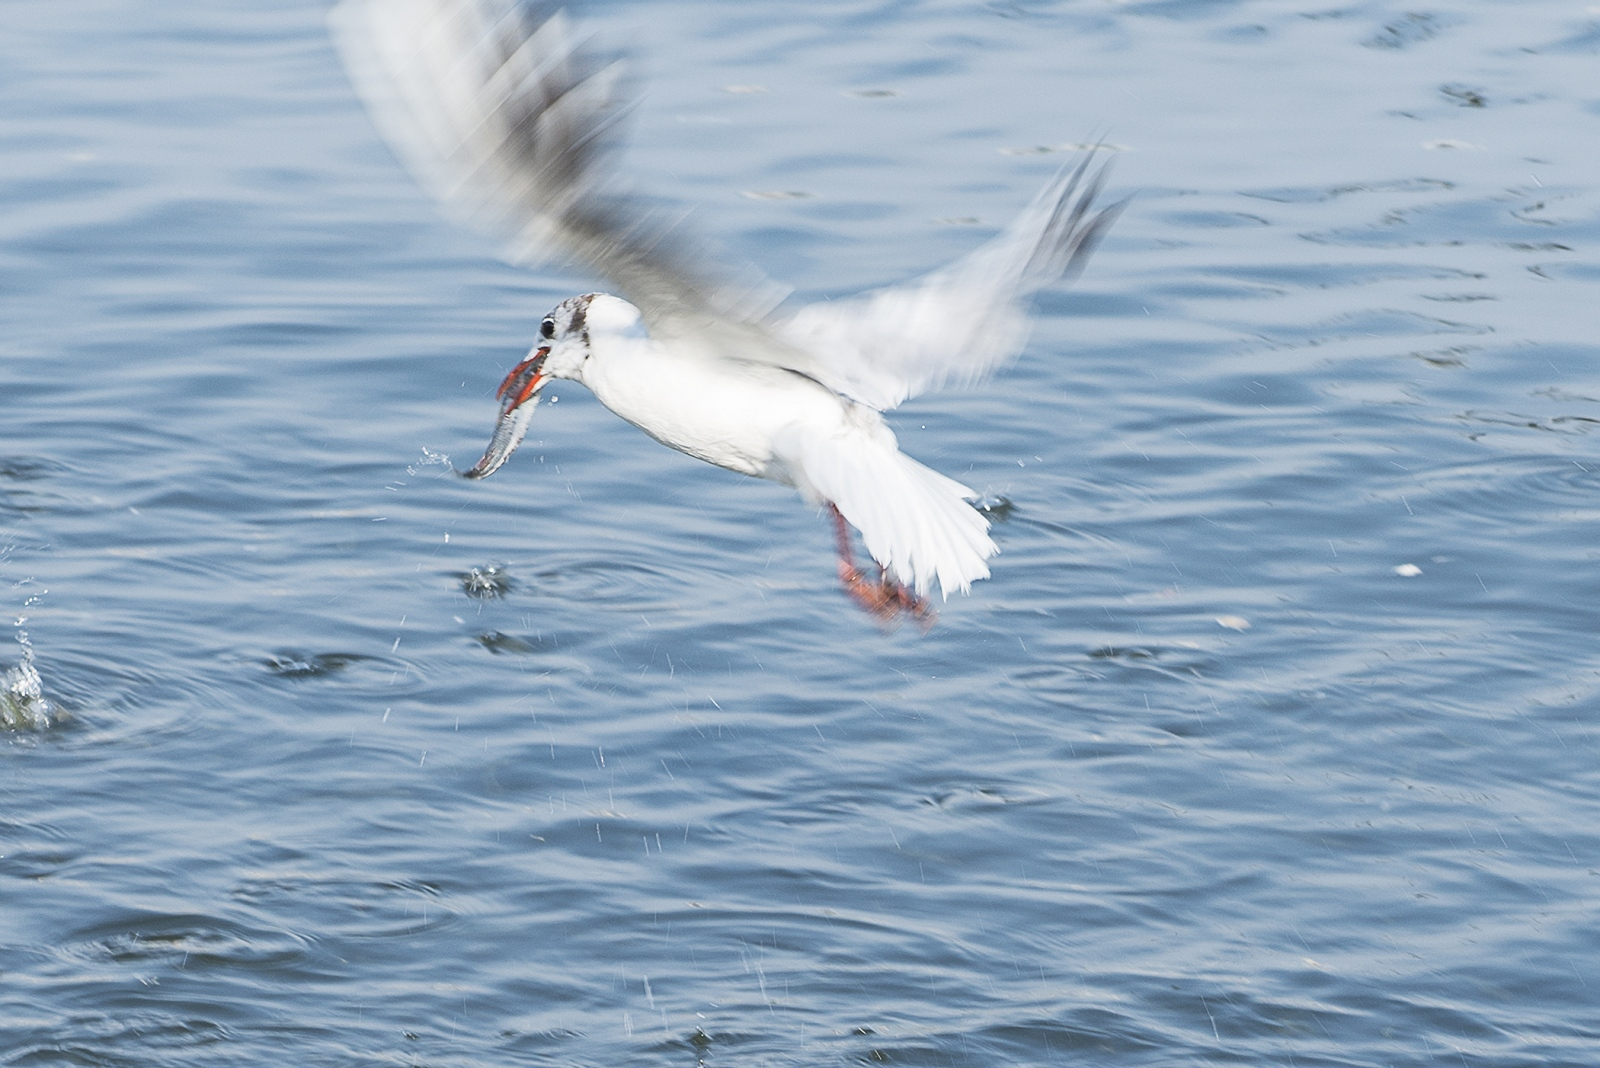 Art and Documentary Photography - Loading 11_a_fishing_seagull_reminds_the_nature_s_laws.jpg